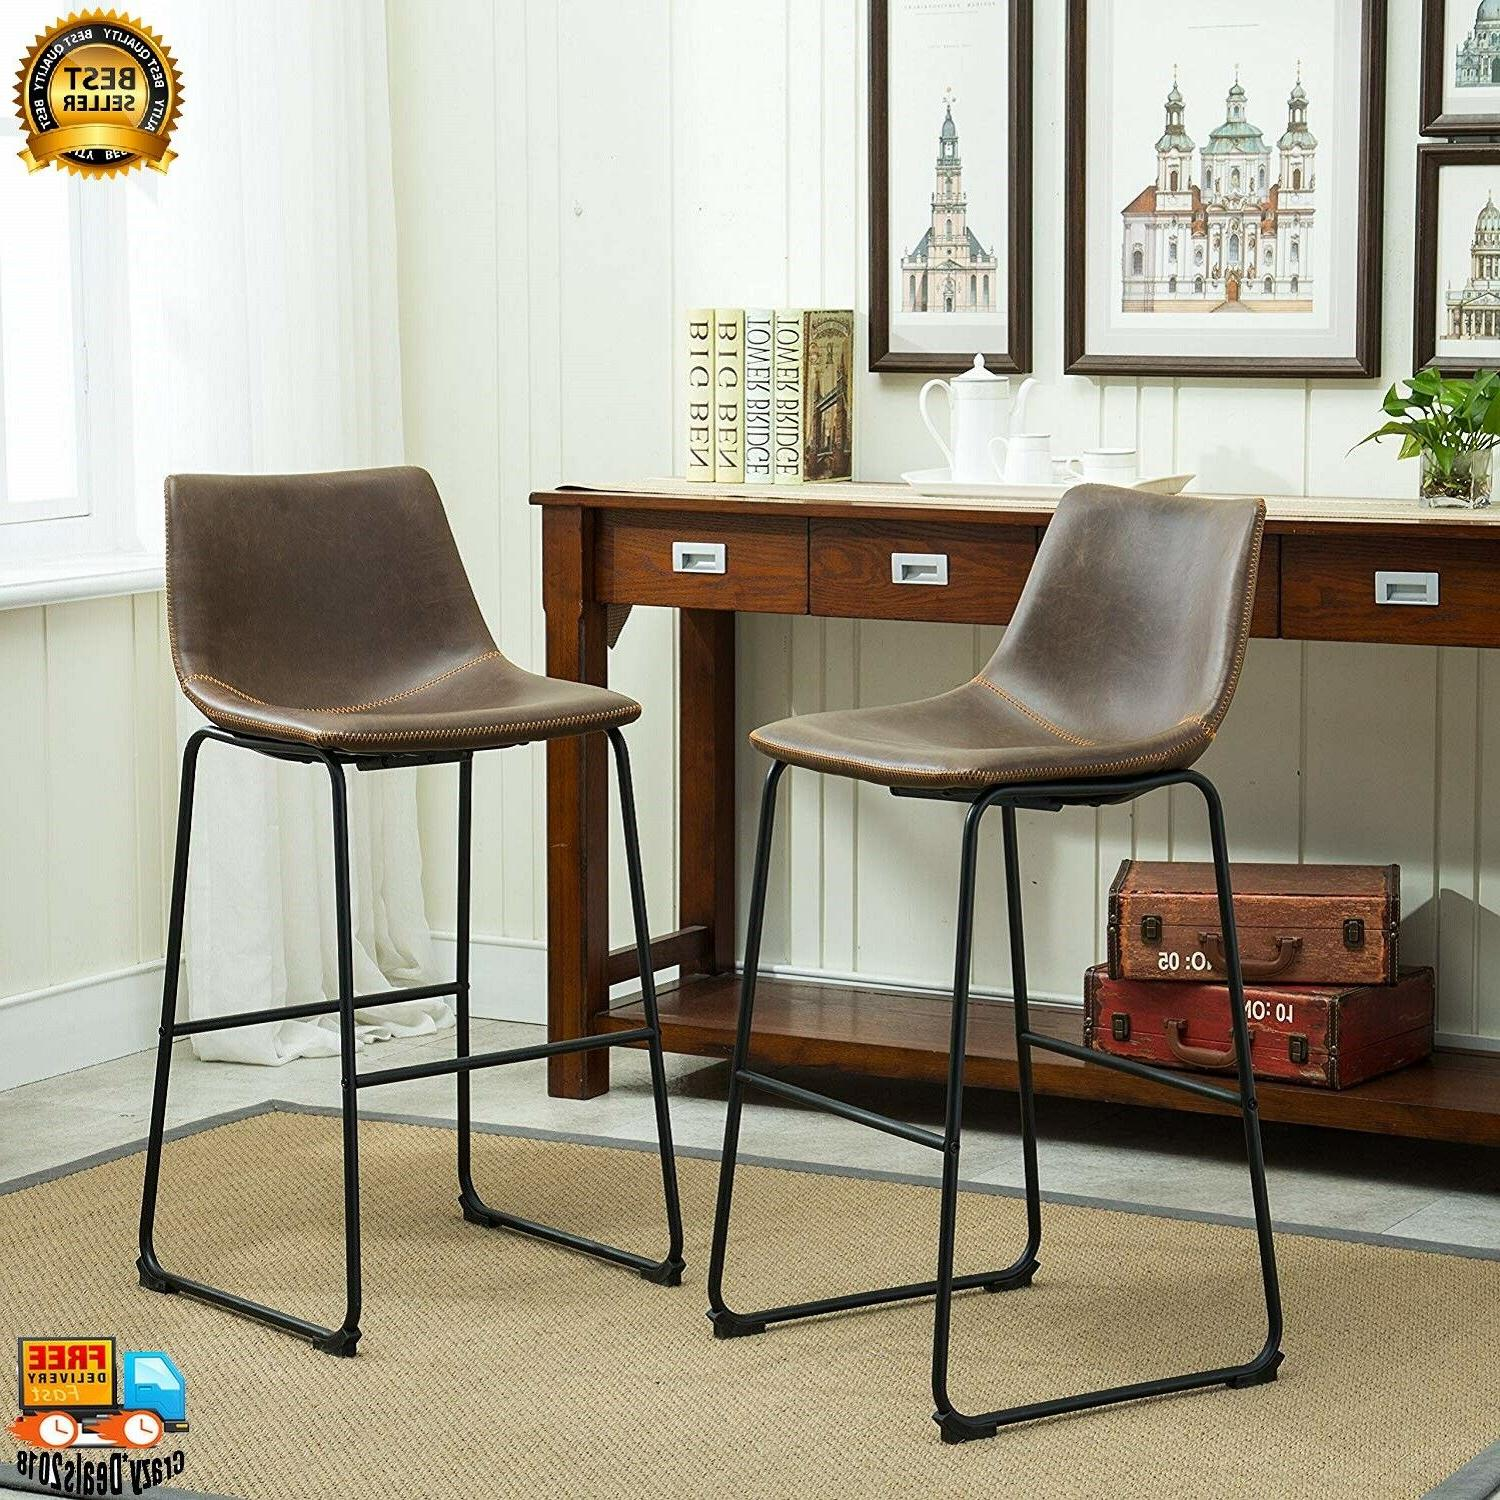 Roundhill Furniture dining chairs Vintage PU Leather Barstoo